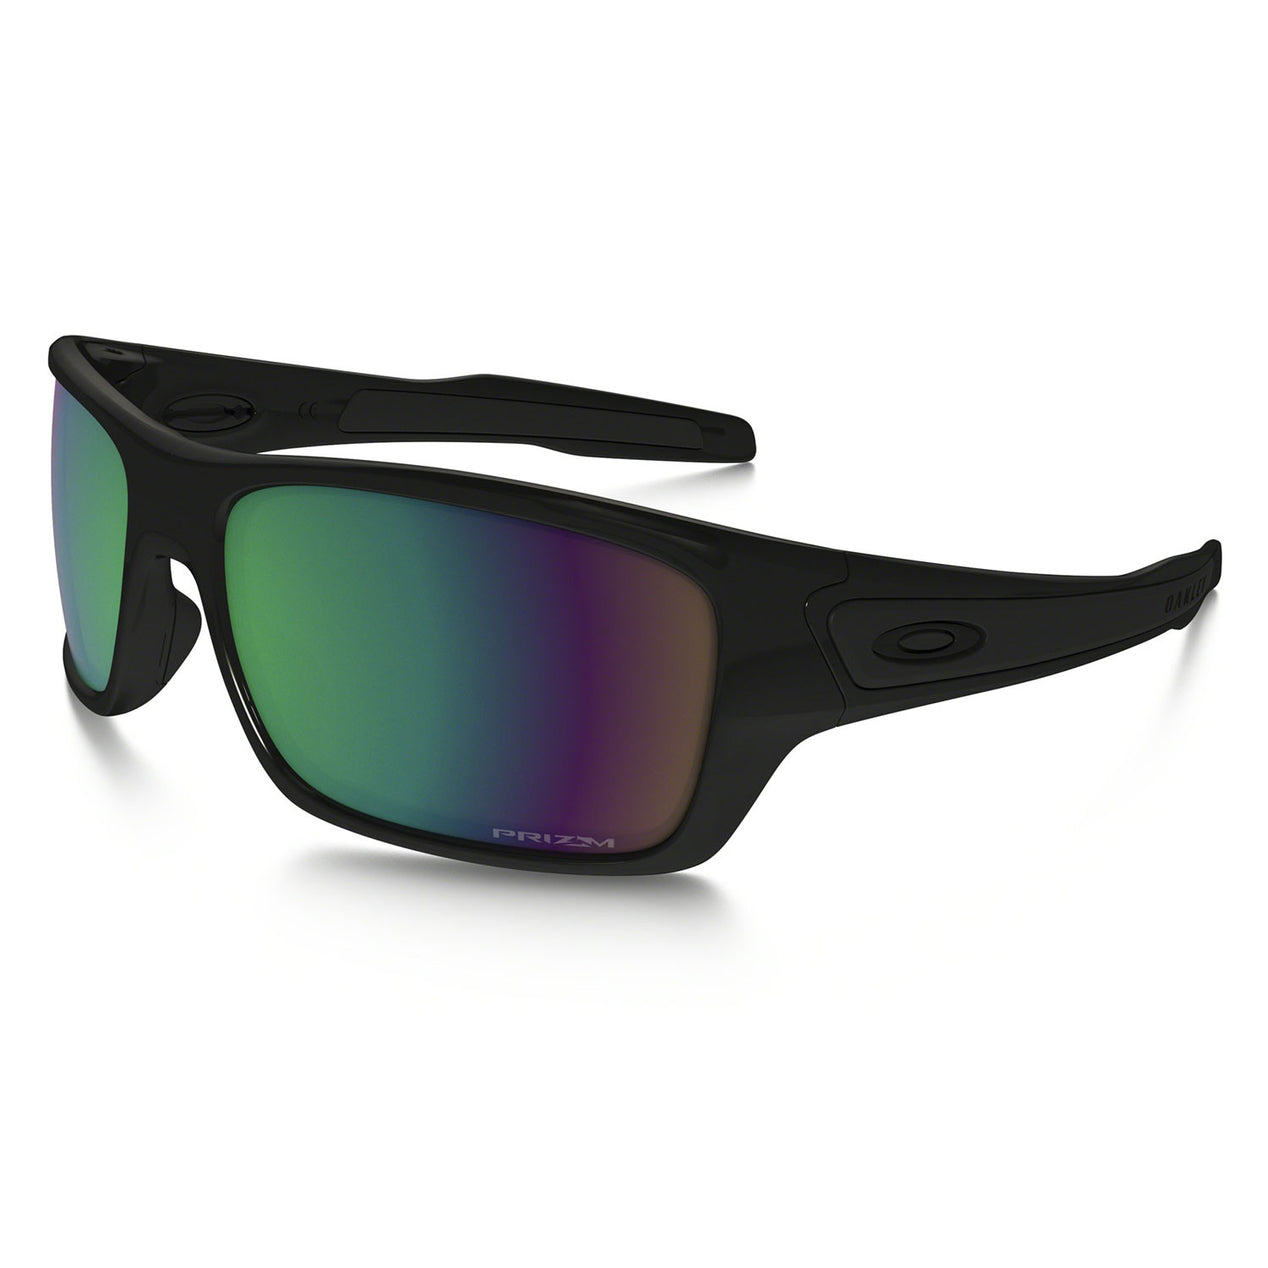 ec475a54abc Oakley Turbine - Polished Black - Prizm Shallow Water Polarized Lens  Sunglasses